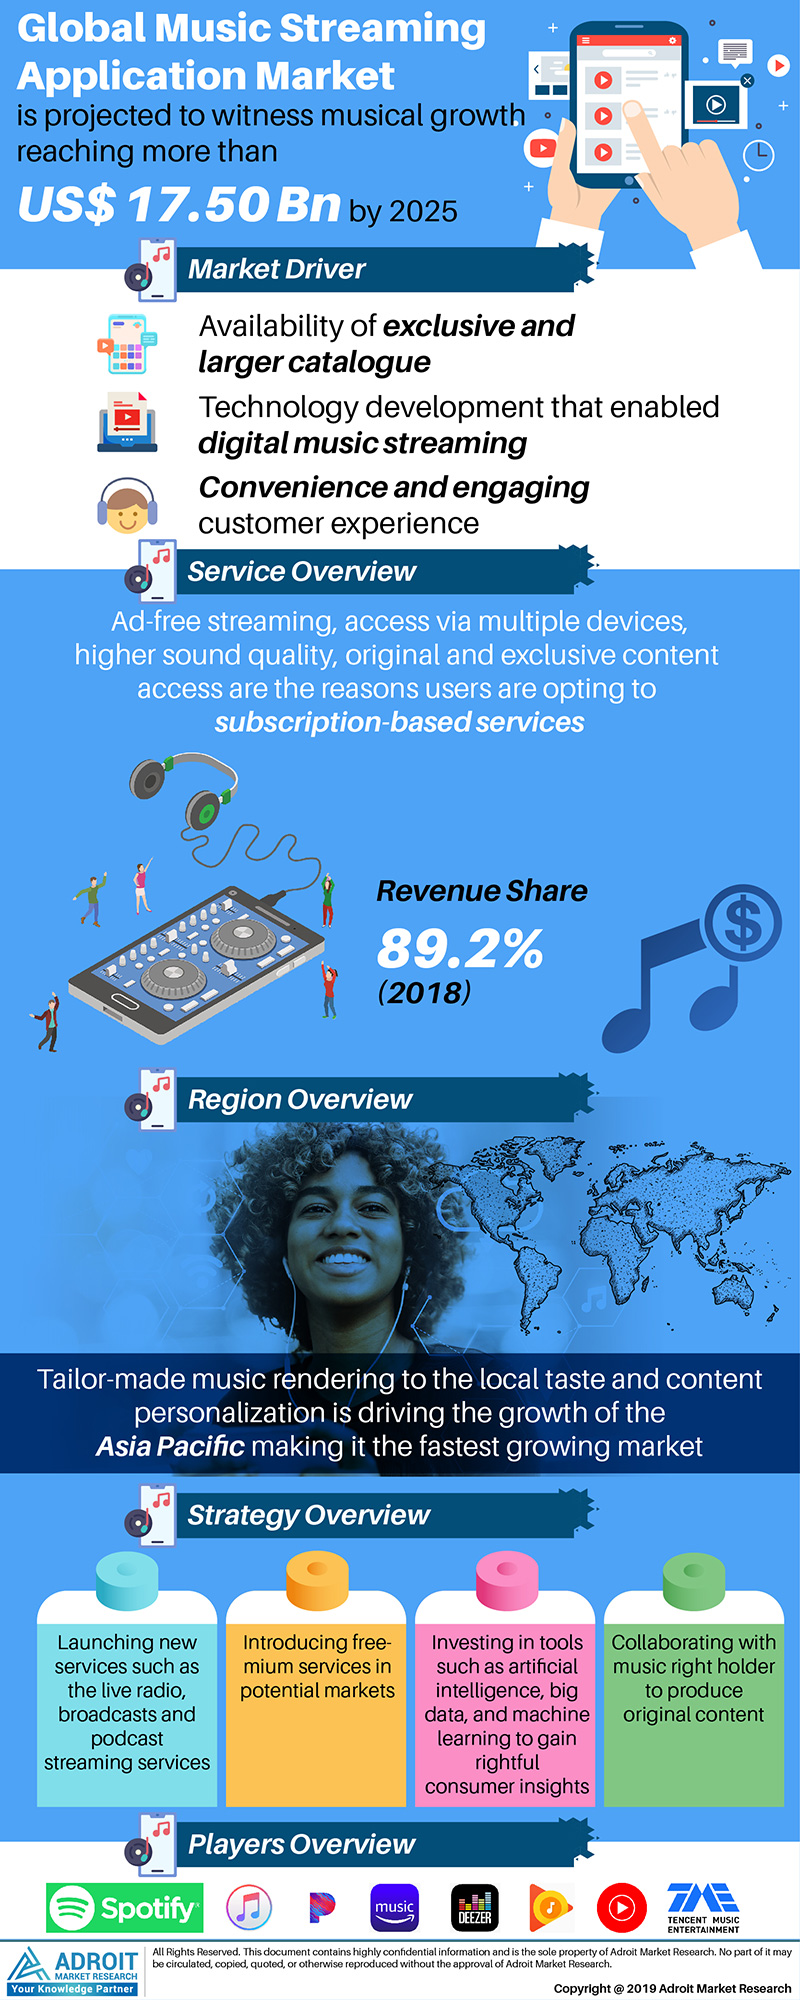 Global Music Streaming Application Market Size 2017 By service type, Region and Forecast 2018 to 2025